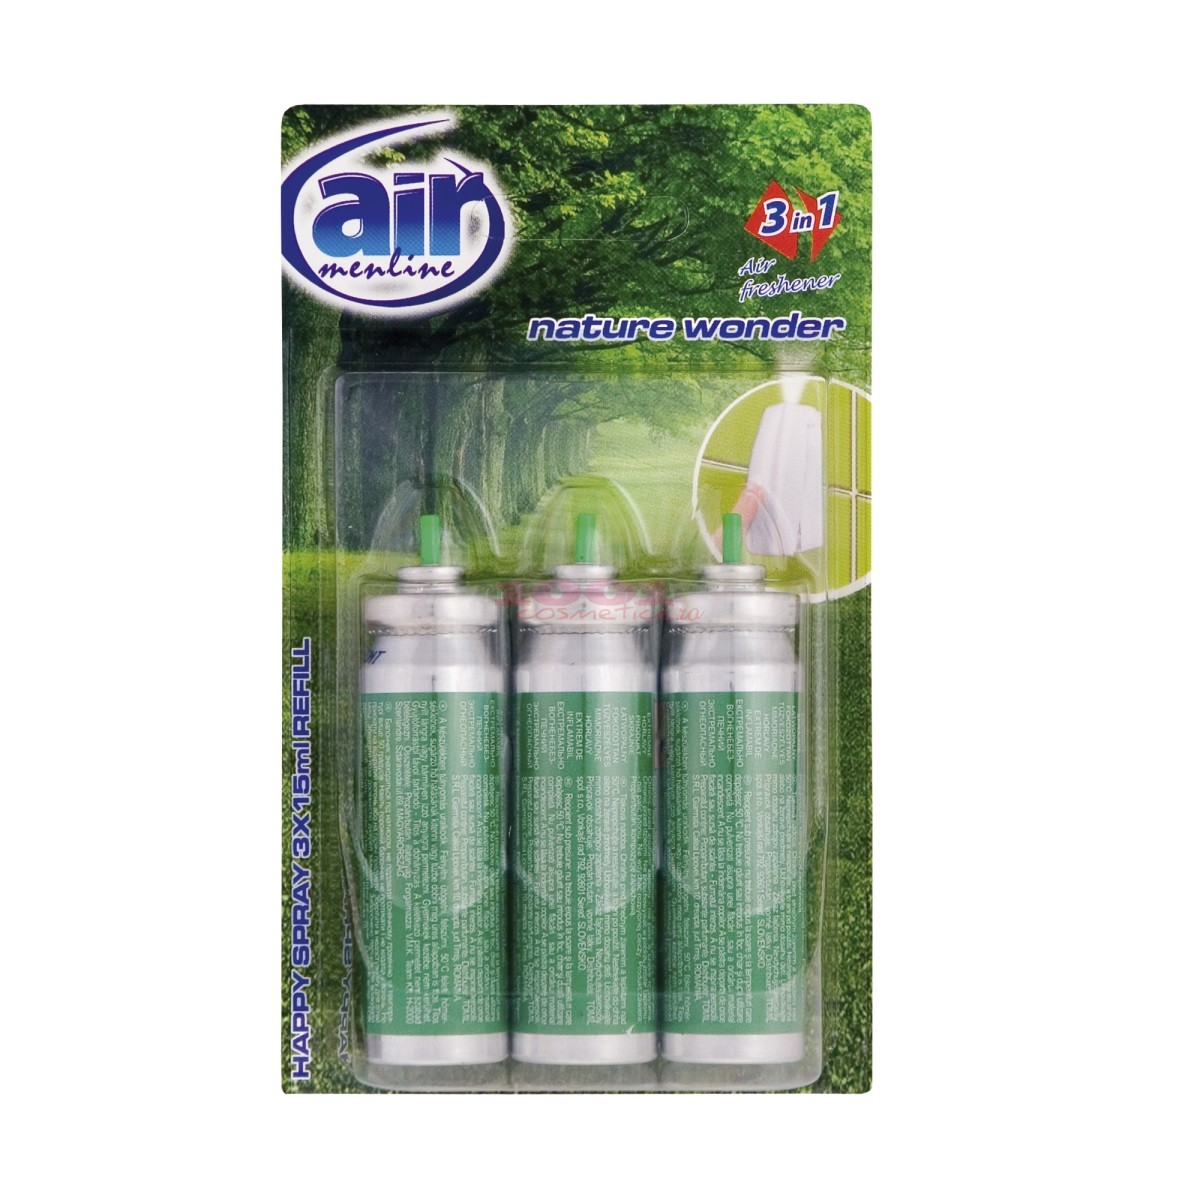 AIR MENLINE 3IN1 SPRAY REZERVA SET 3 BUCATI NATURE WONDER